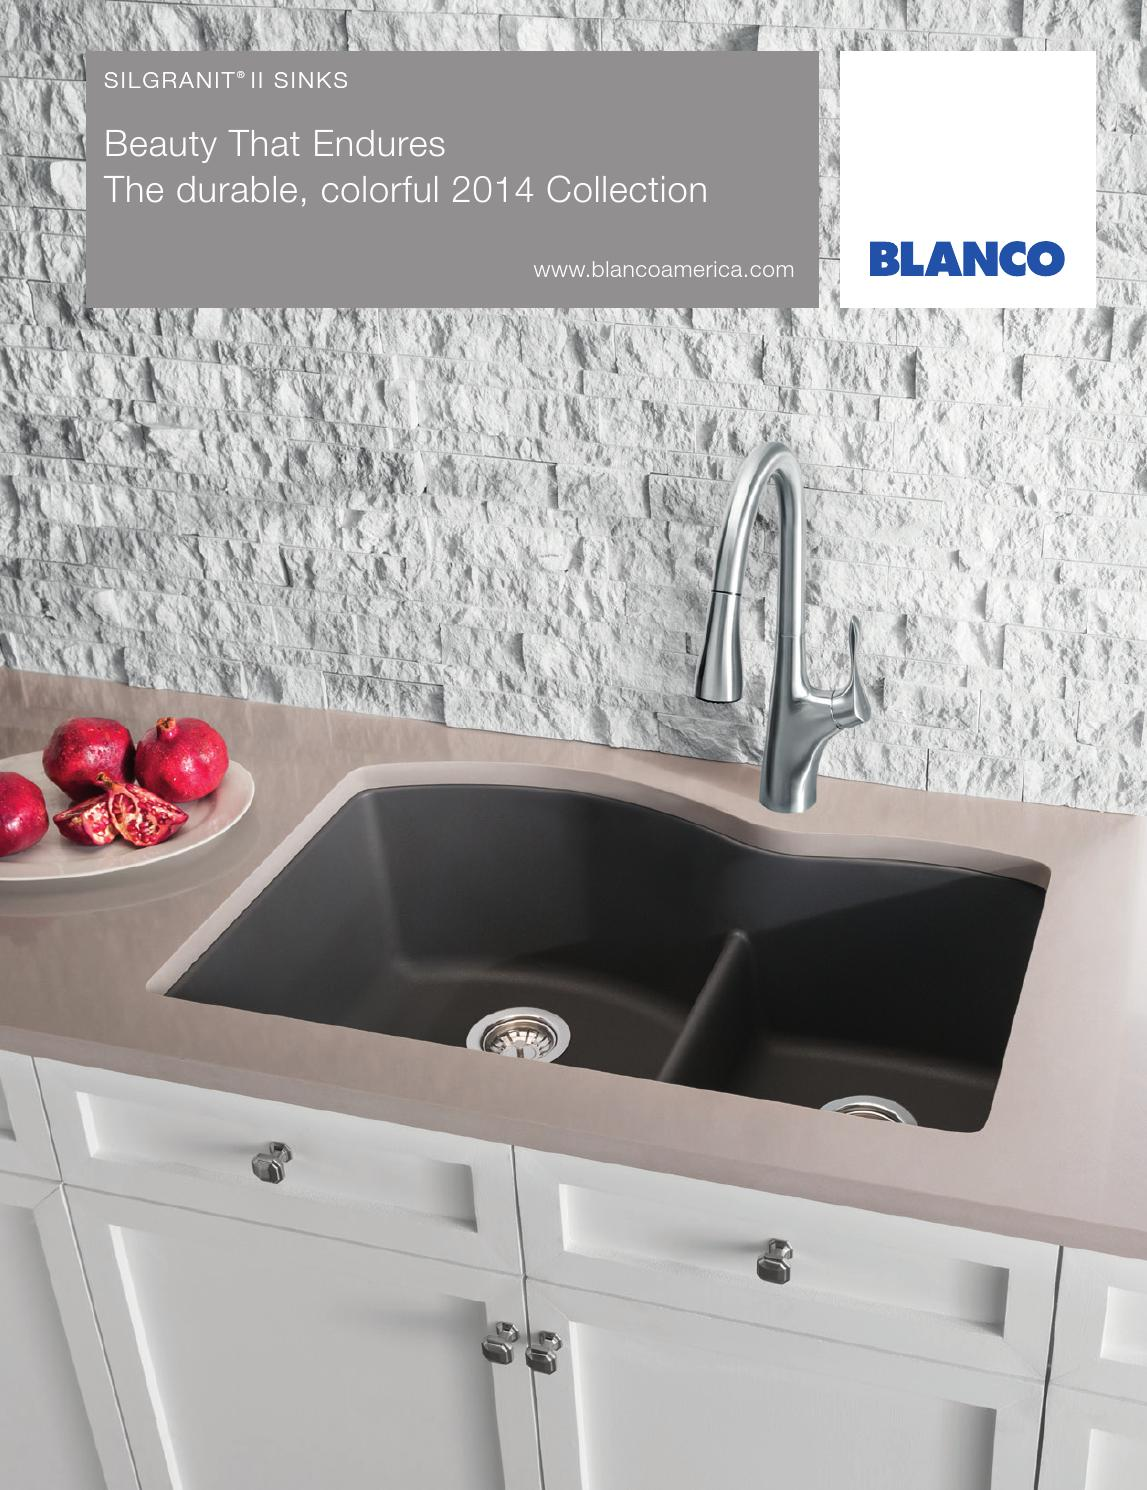 blanco catalog blanco kitchen sinks